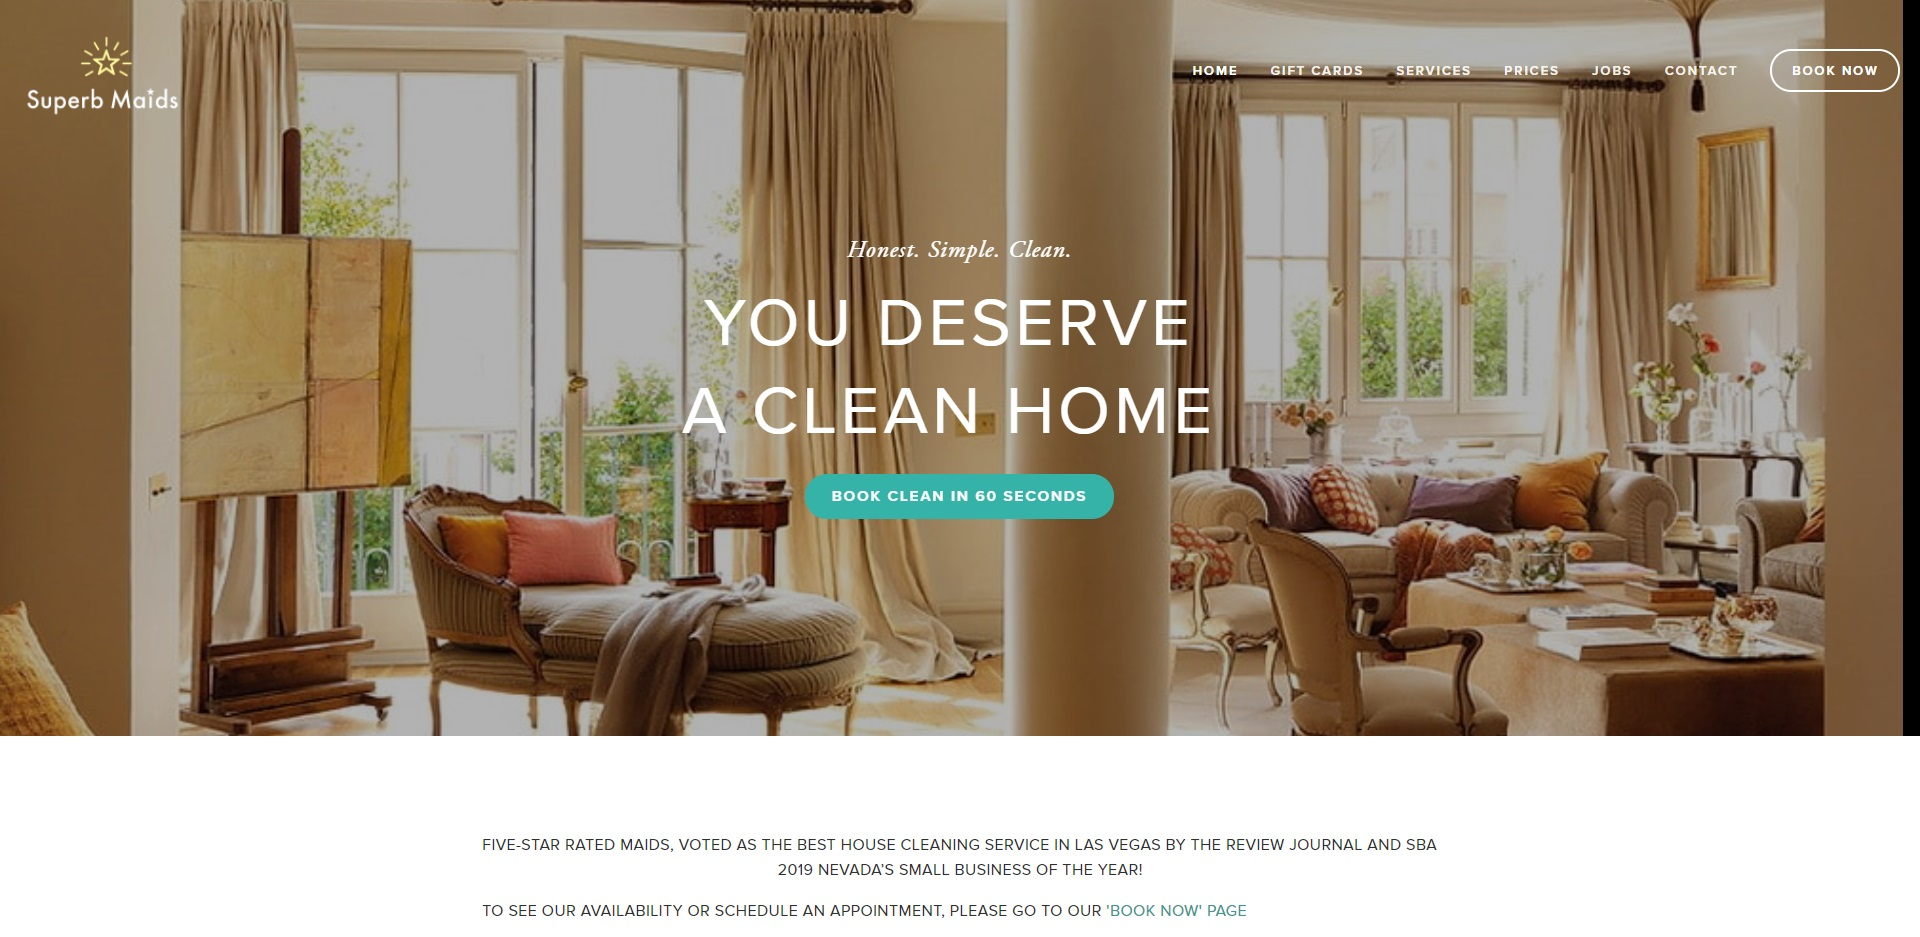 5 Best House Cleaning Services in Las Vegas, NV